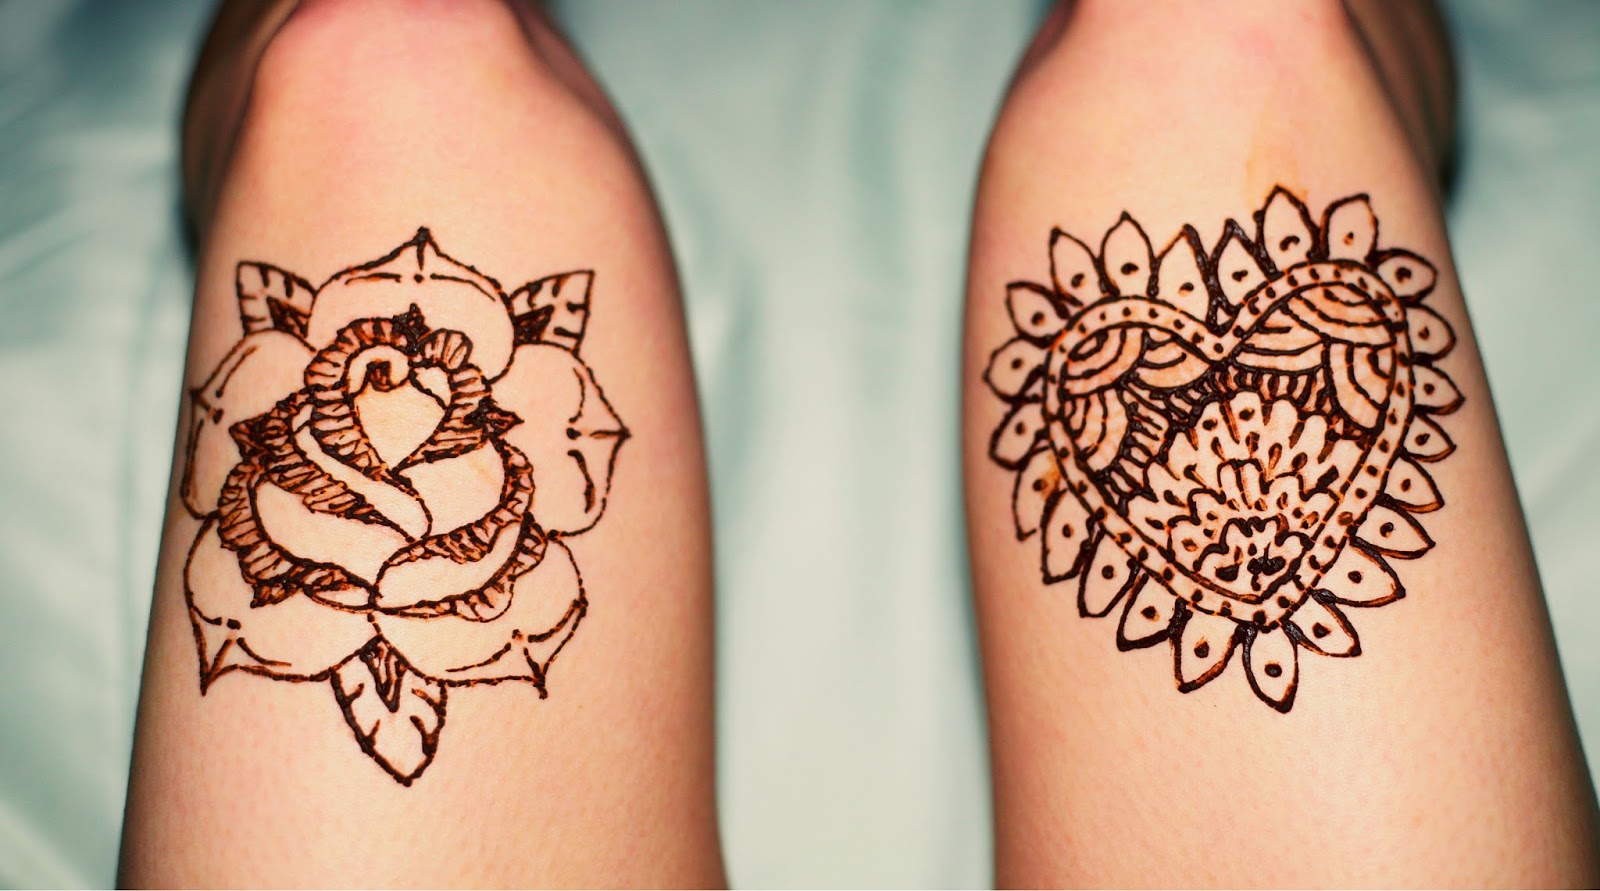 Coffee Break Articles: How to Make a Fake Tattoo That Looks Real